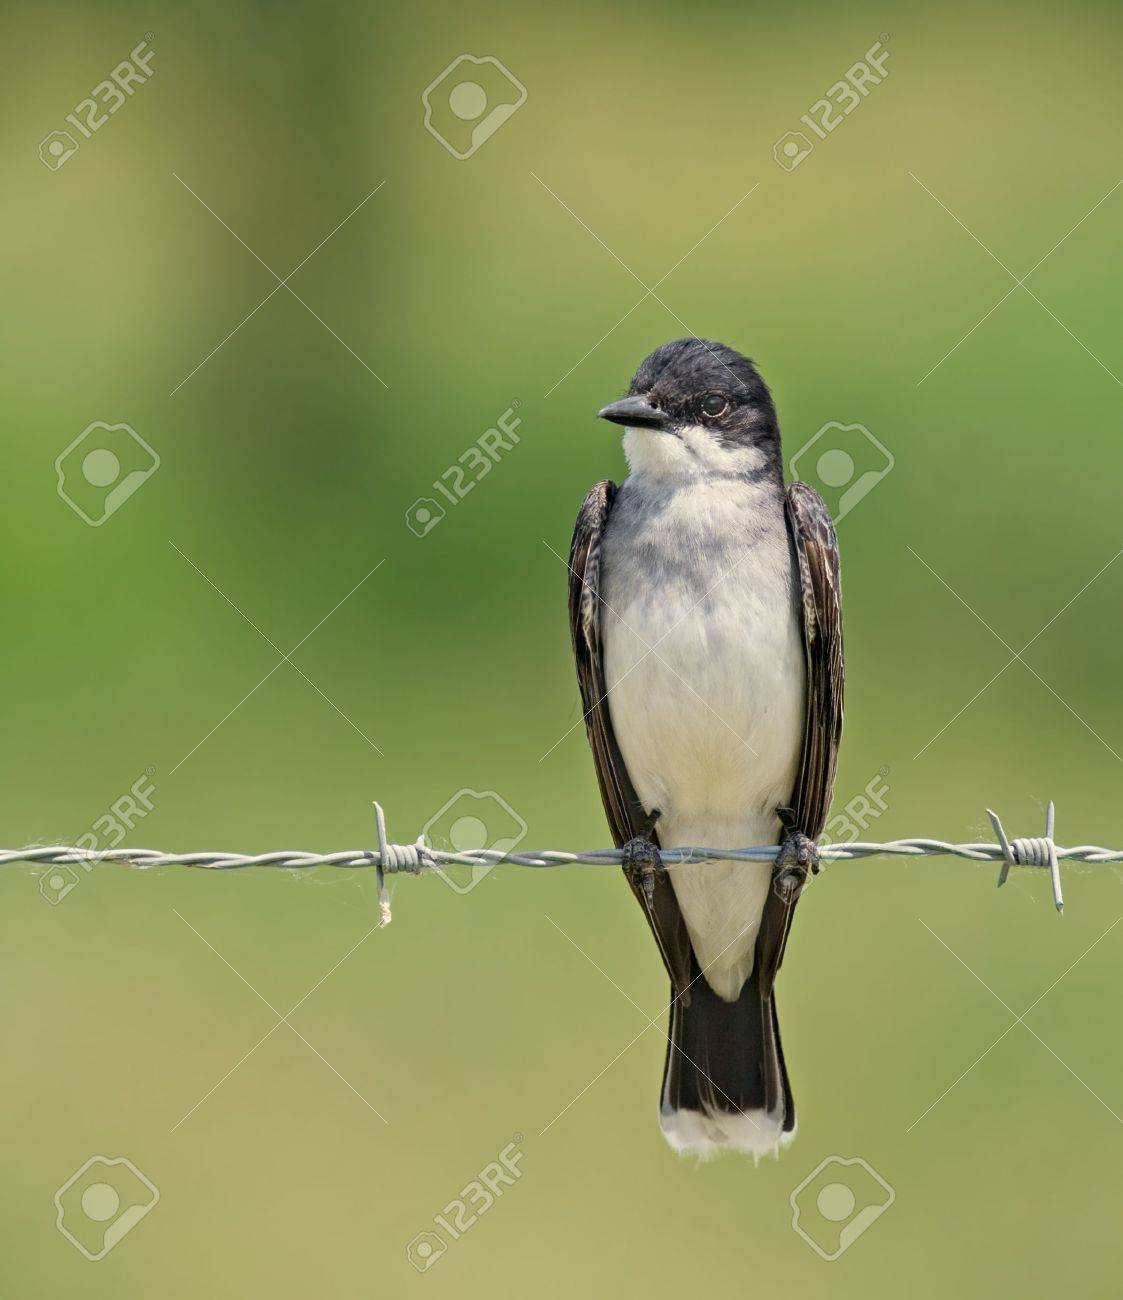 Eastern kingbird perched on a barbed wire fence Stock Photo - 3326683